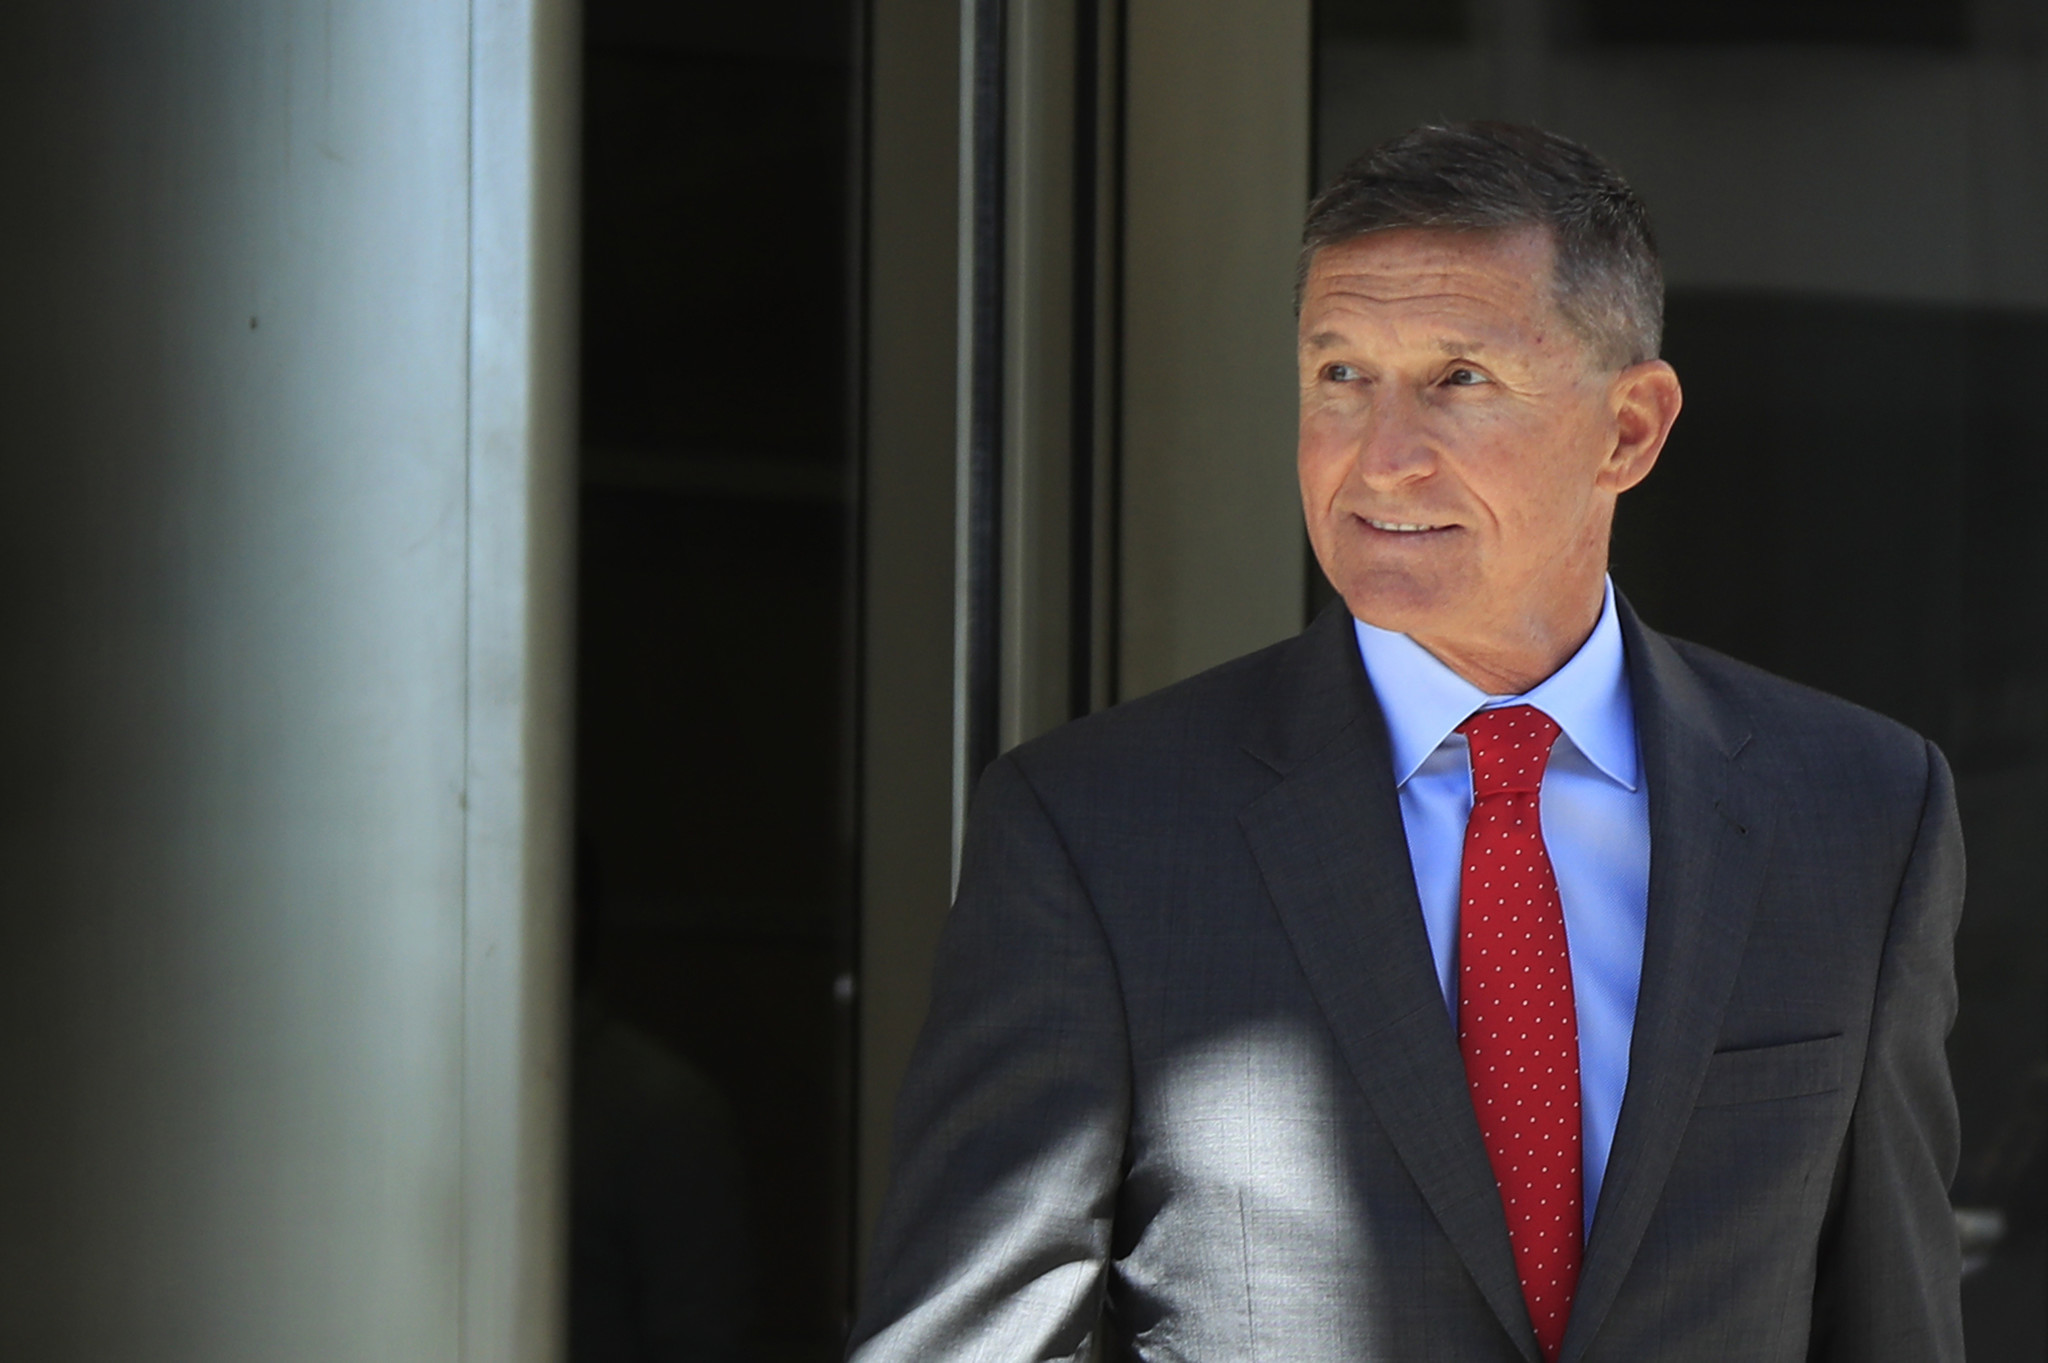 Flynn never would have been prosecuted by a properly functioning Department of Justice, but the unconstitutional Mueller investigation has spent more than a fortune hunting for crimes.